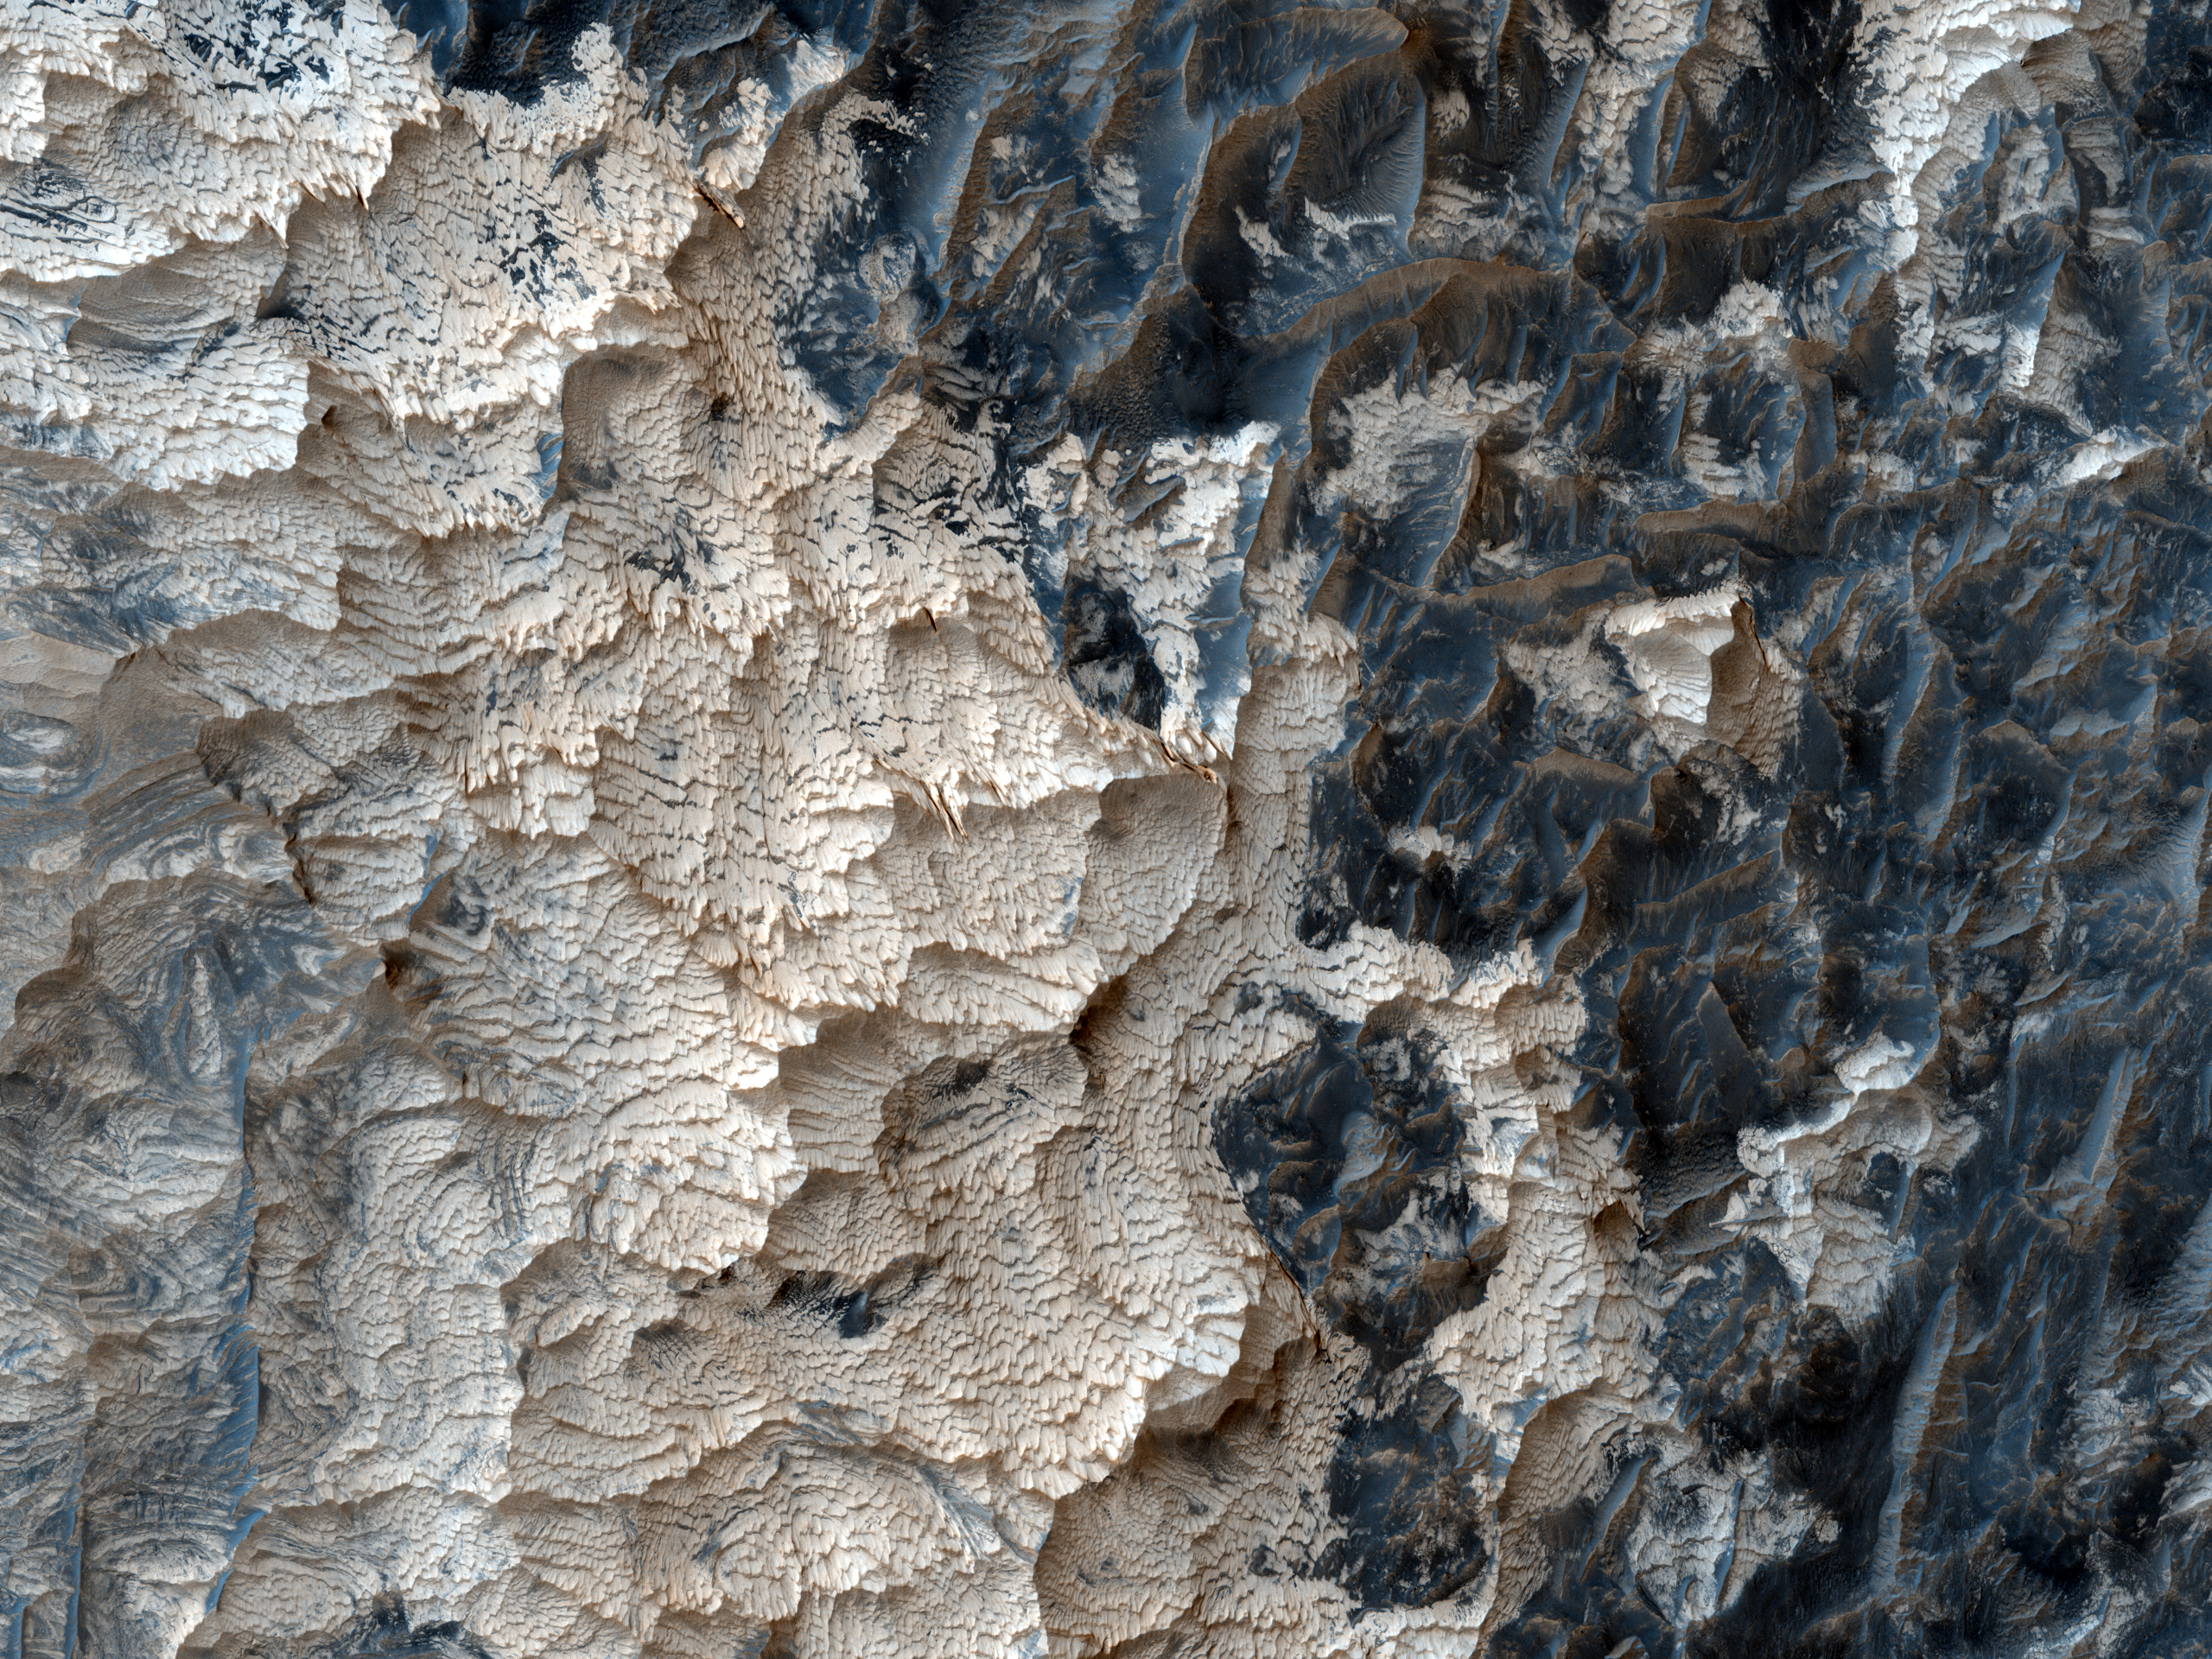 Colorful Outcrops in Schiaparelli